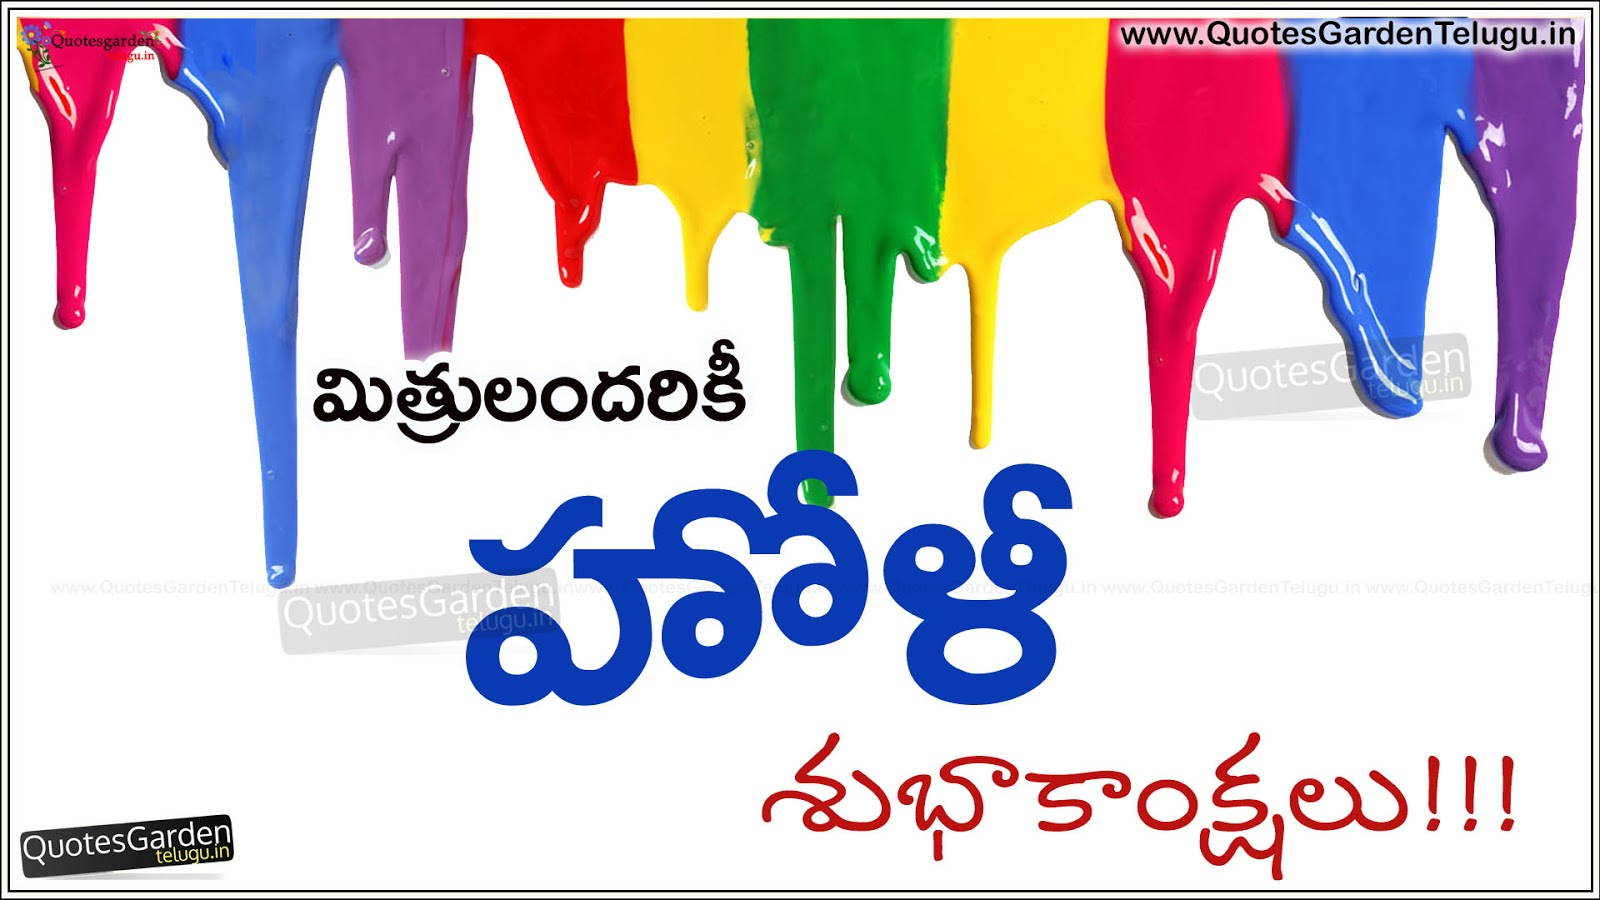 Happy holi 2017 telugu greetings wallpapers quotes garden telugu happy holi 2017 telugu greetings wallpapers m4hsunfo